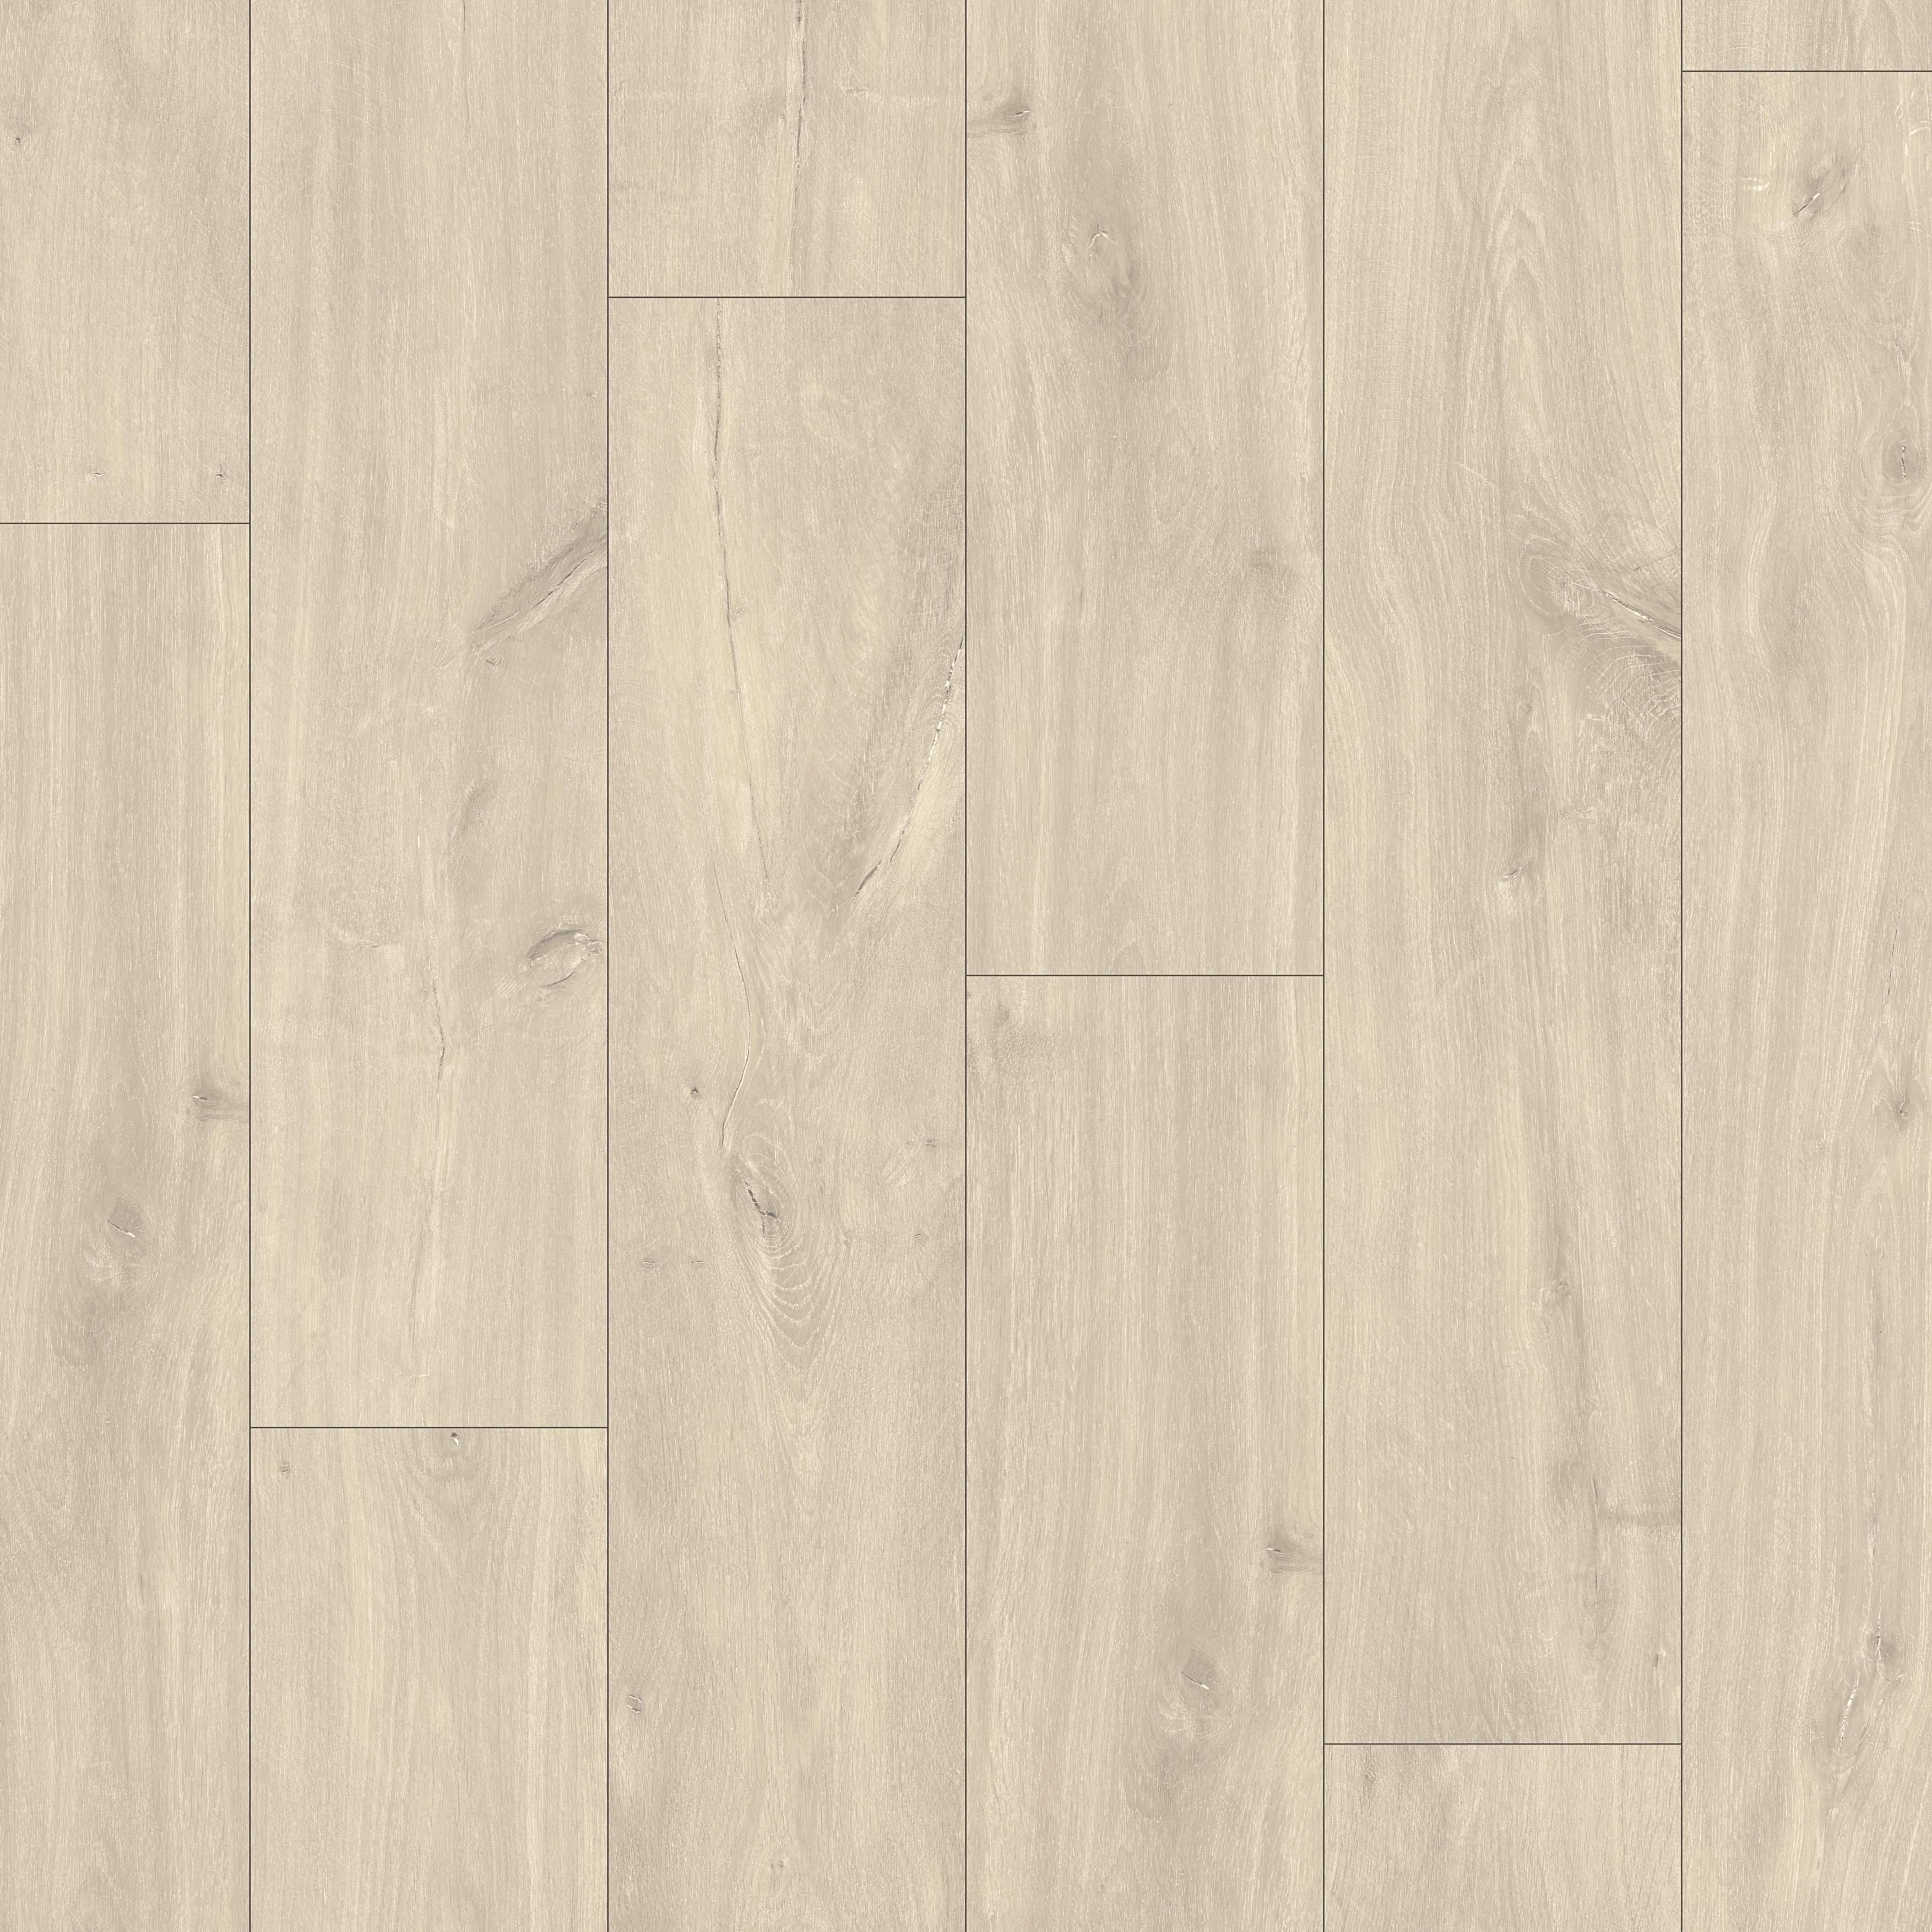 Quick-Step Classic Havanna Oak Natural CLM1655 Hydroseal Laminate Flooring